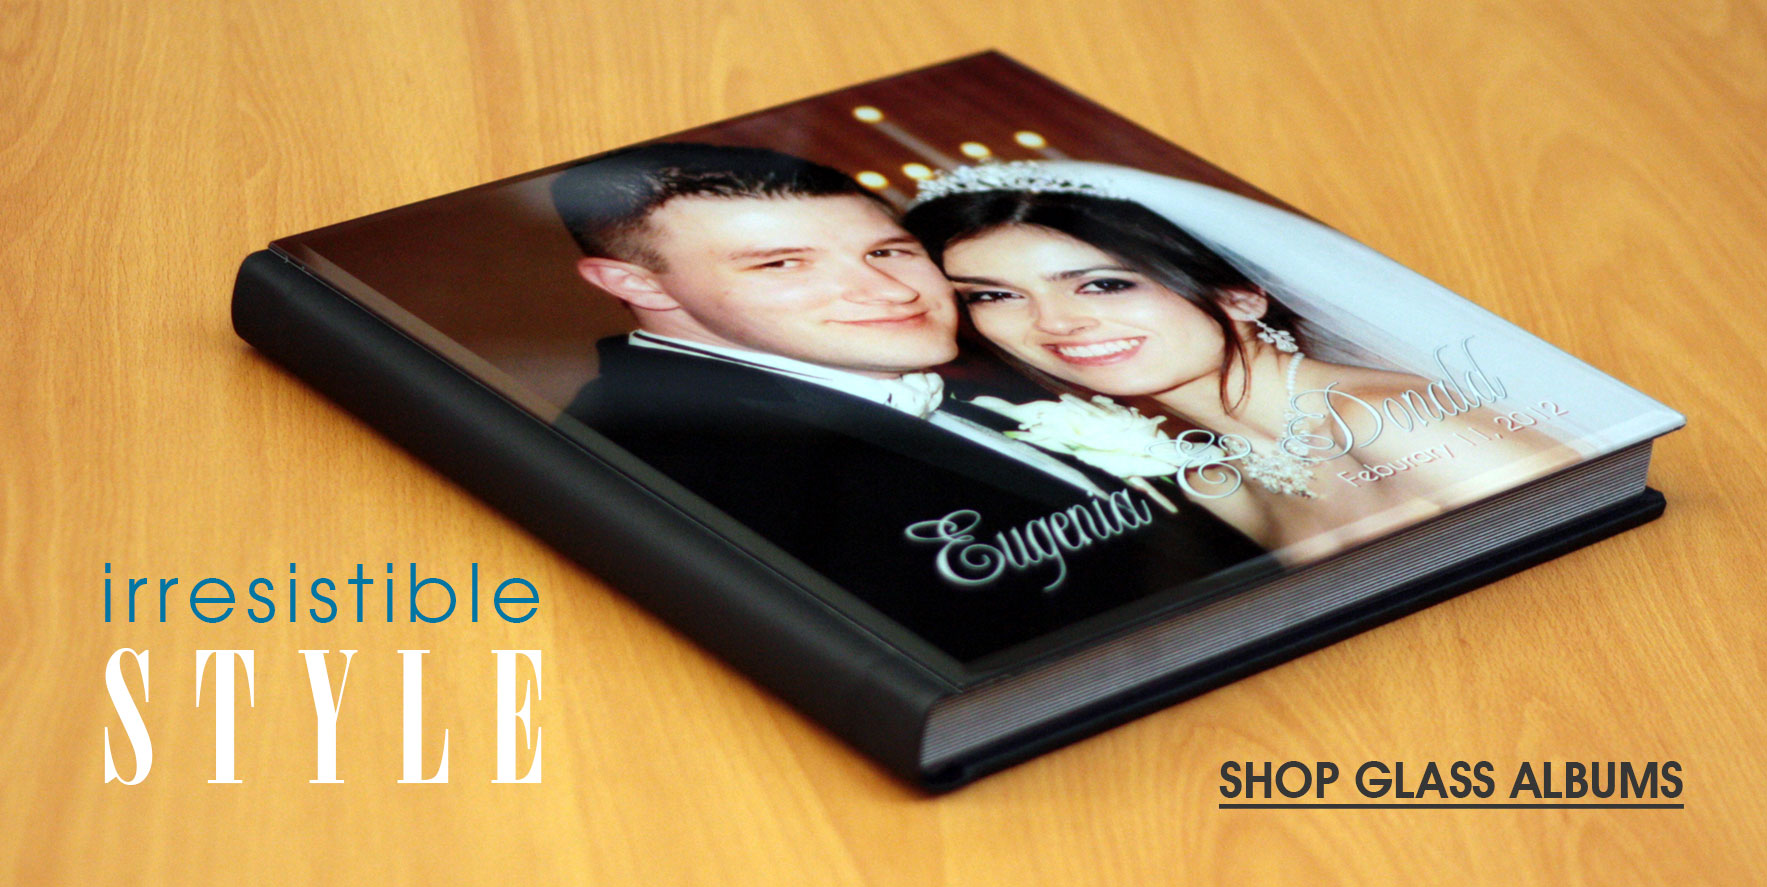 Irresistible Style - Click to Shop Glass Photo Albums